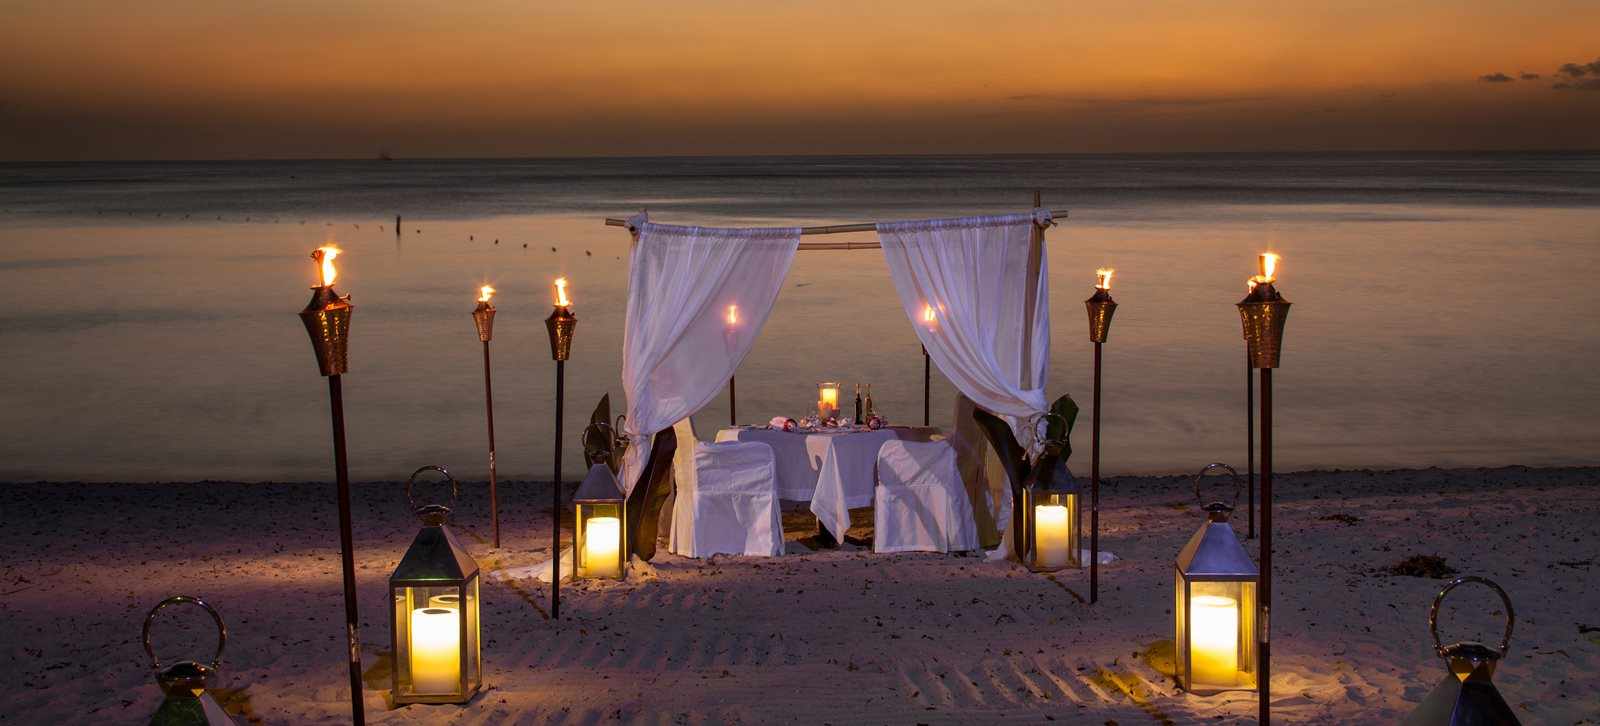 Candle-lit Dinner on the Beach